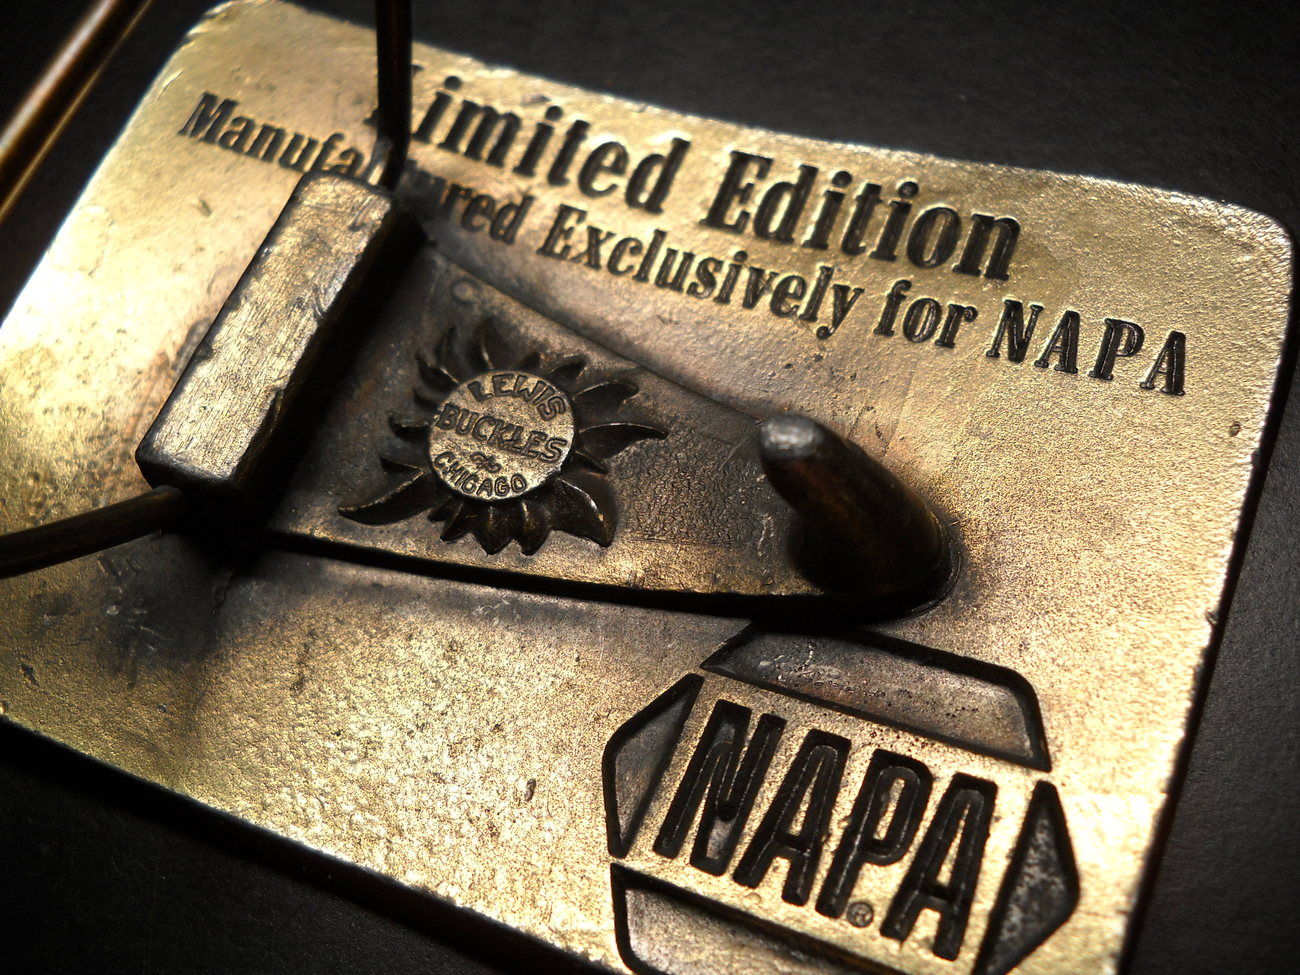 NAPA National Automotive Parts Association Belt Buckle Lewis Buckles ...